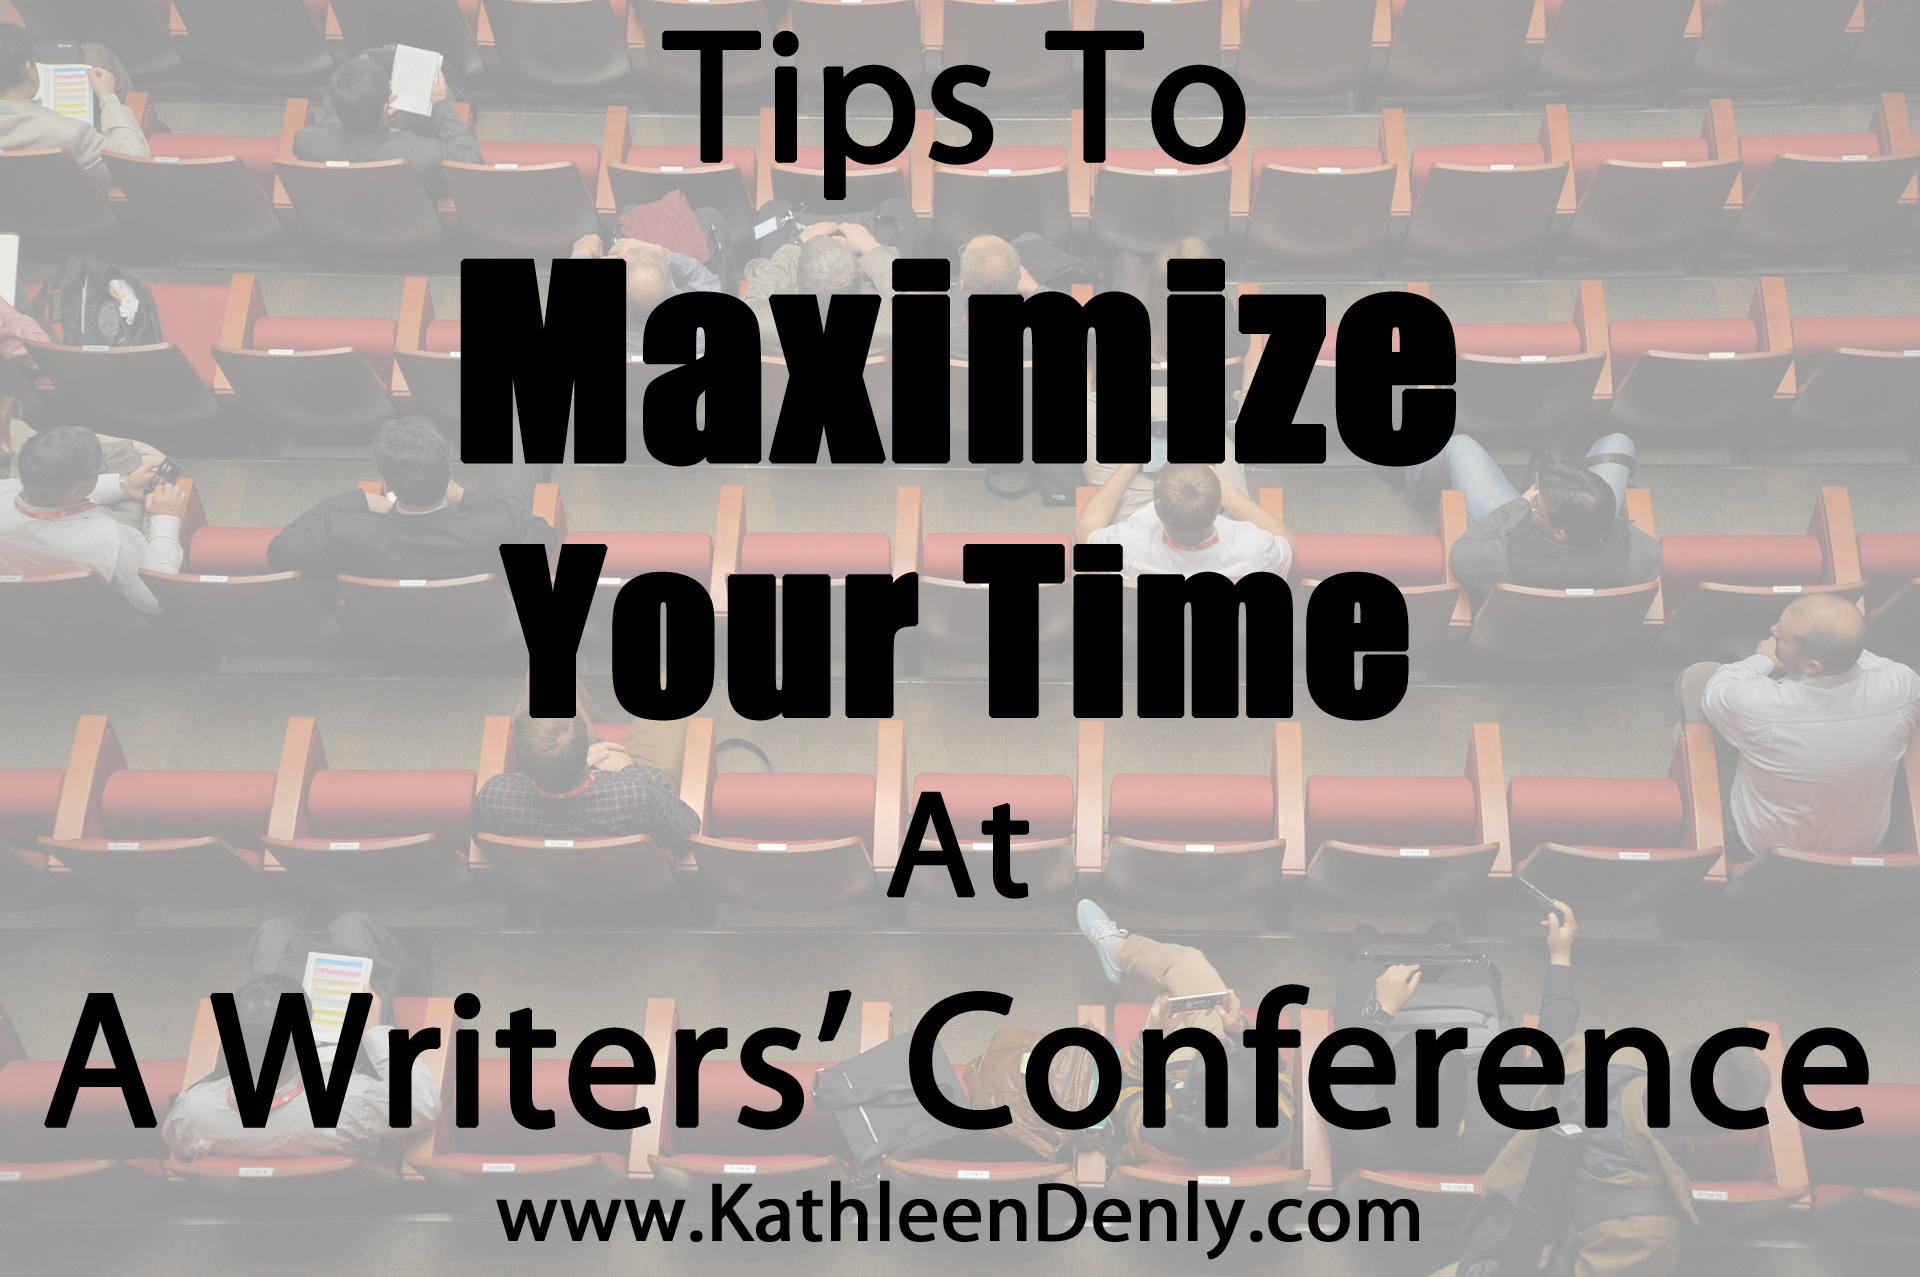 Tips to Maximize Your Time at a Writers Conference